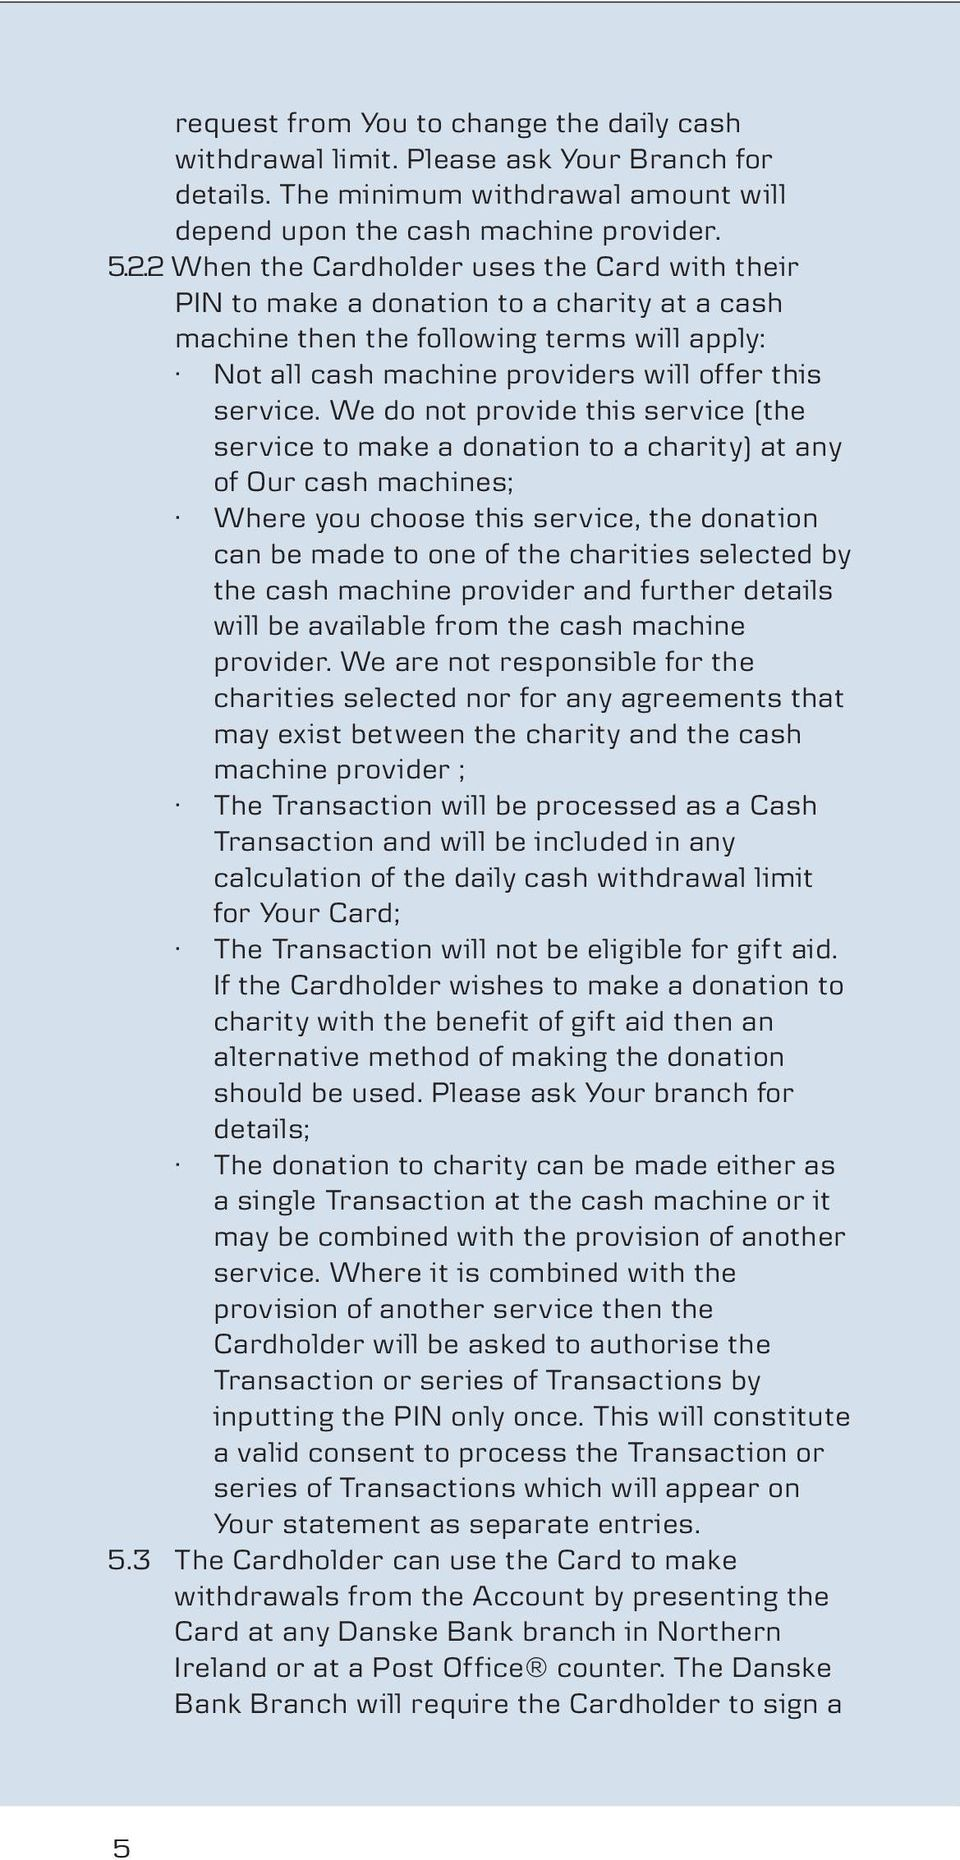 We do not provide this service (the service to make a donation to a charity) at any of Our cash machines; Where you choose this service, the donation can be made to one of the charities selected by